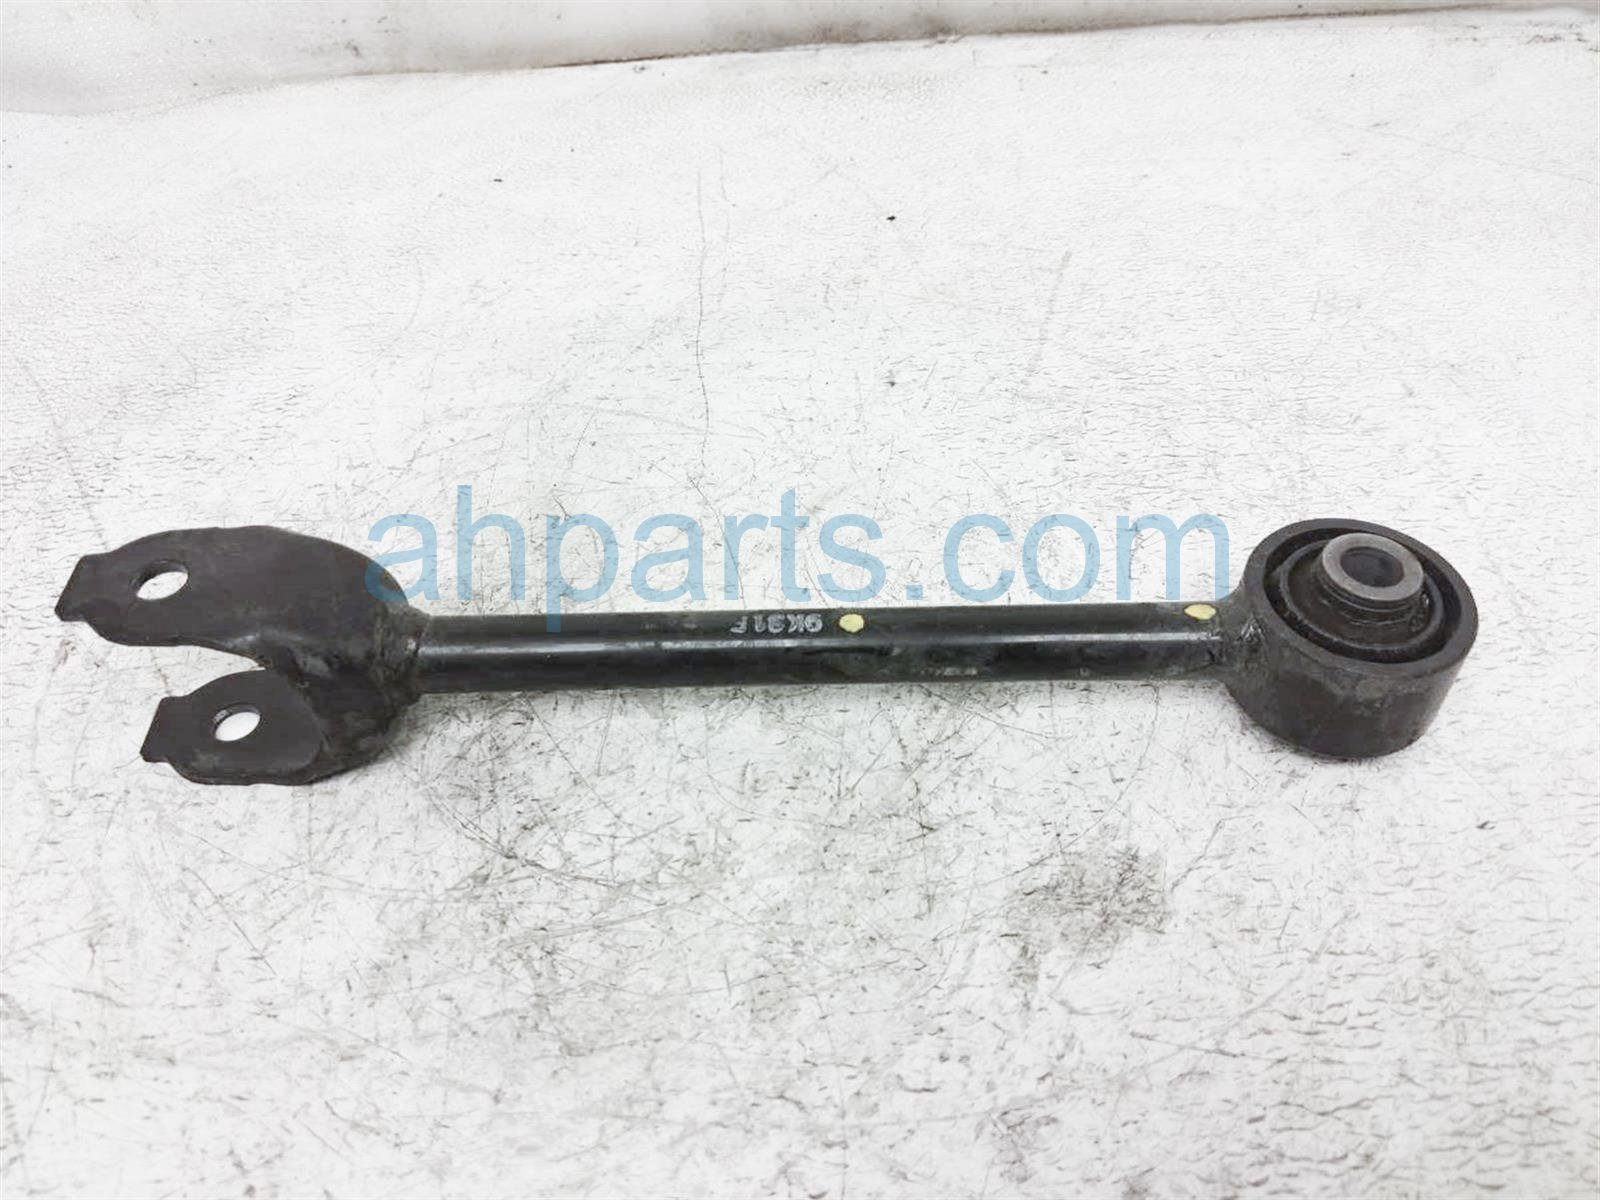 2019 Toyota Rav 4 Lower Rear Driver Tie Rod Control Arm 48710 0R050 Replacement